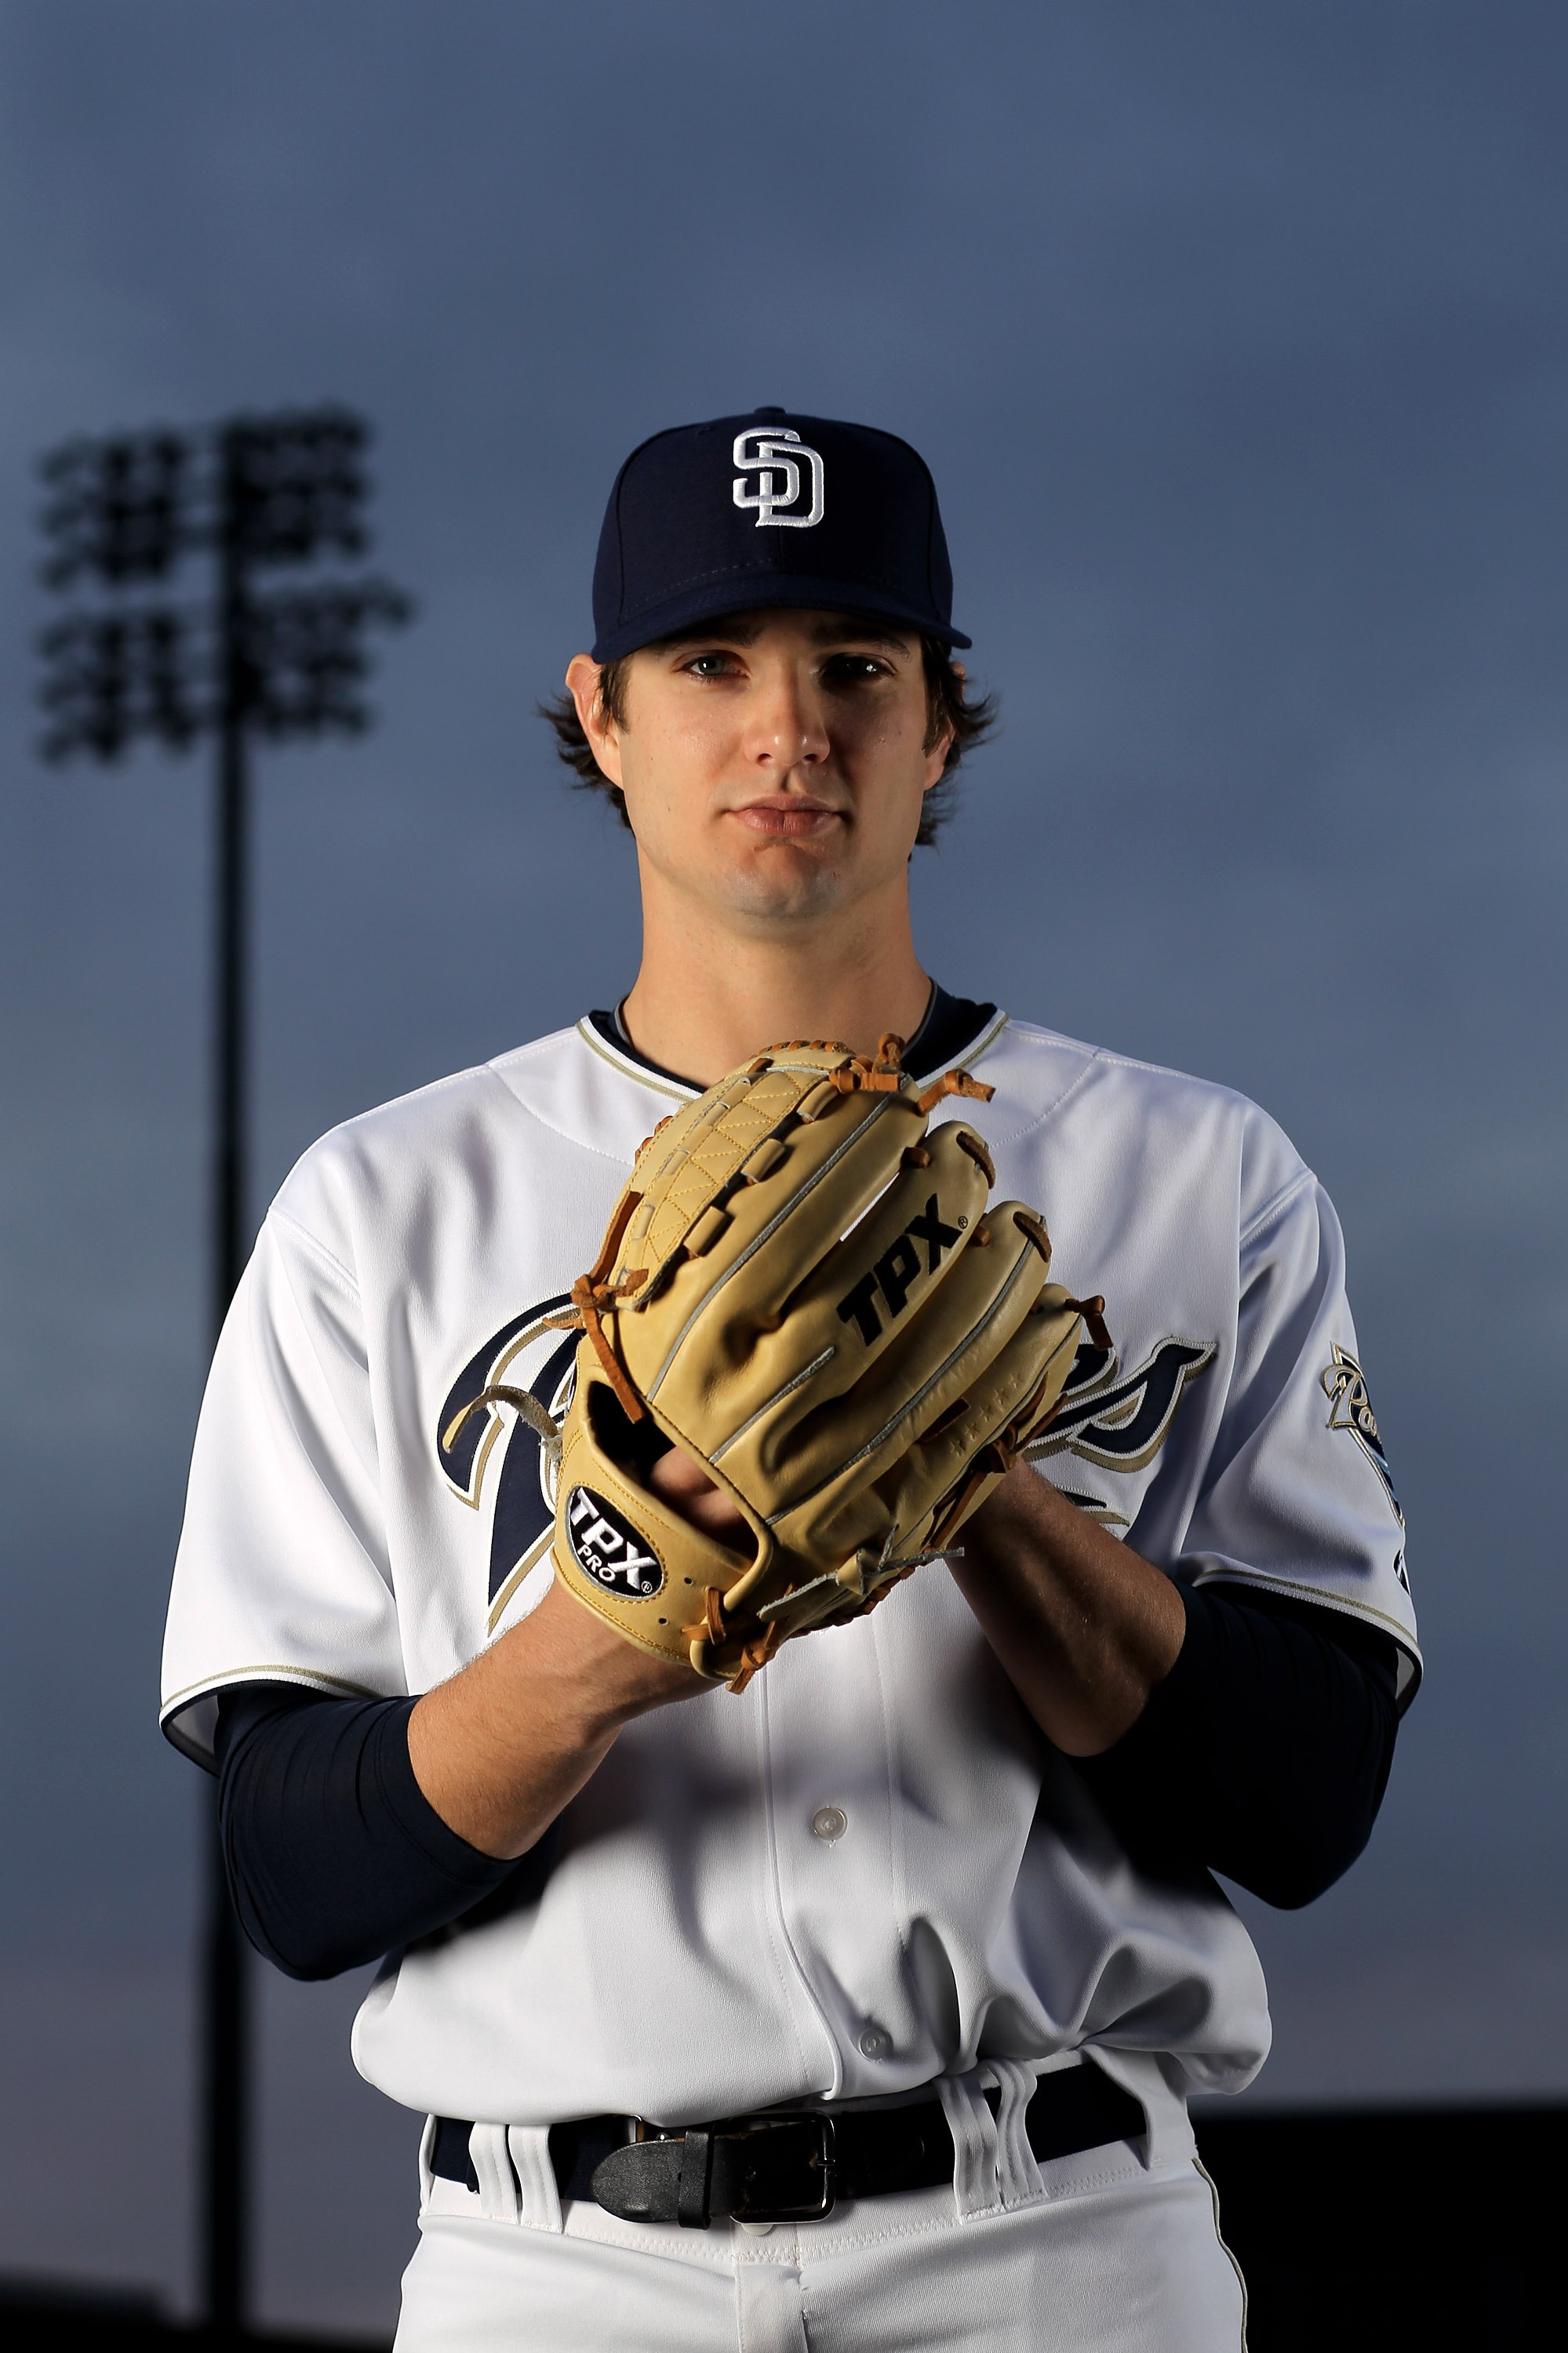 PEORIA, AZ - FEBRUARY 27:  Cory Luebke of the San Diego Padres poses during photo media day at the Padres spring training complex on February 27, 2010 in Peoria, Arizona.  (Photo by Ezra Shaw/Getty Images)